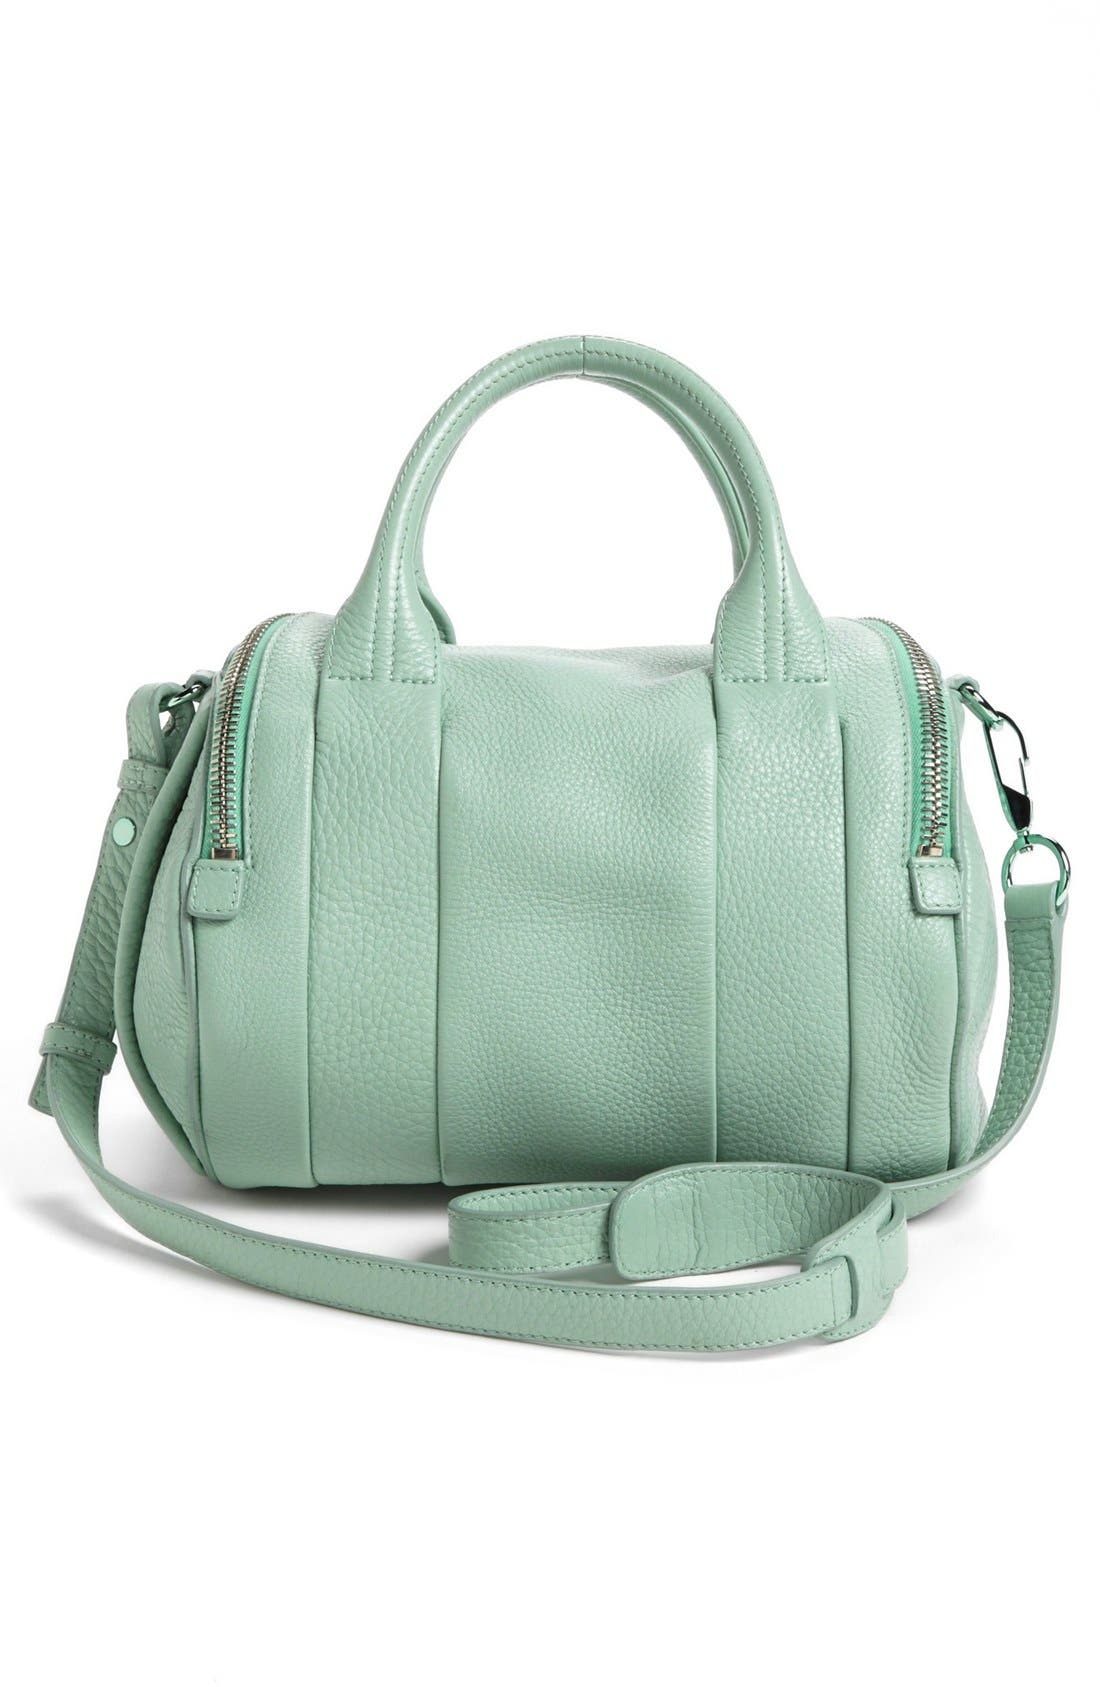 Alternate Image 3  - Alexander Wang 'Rockie' Satchel